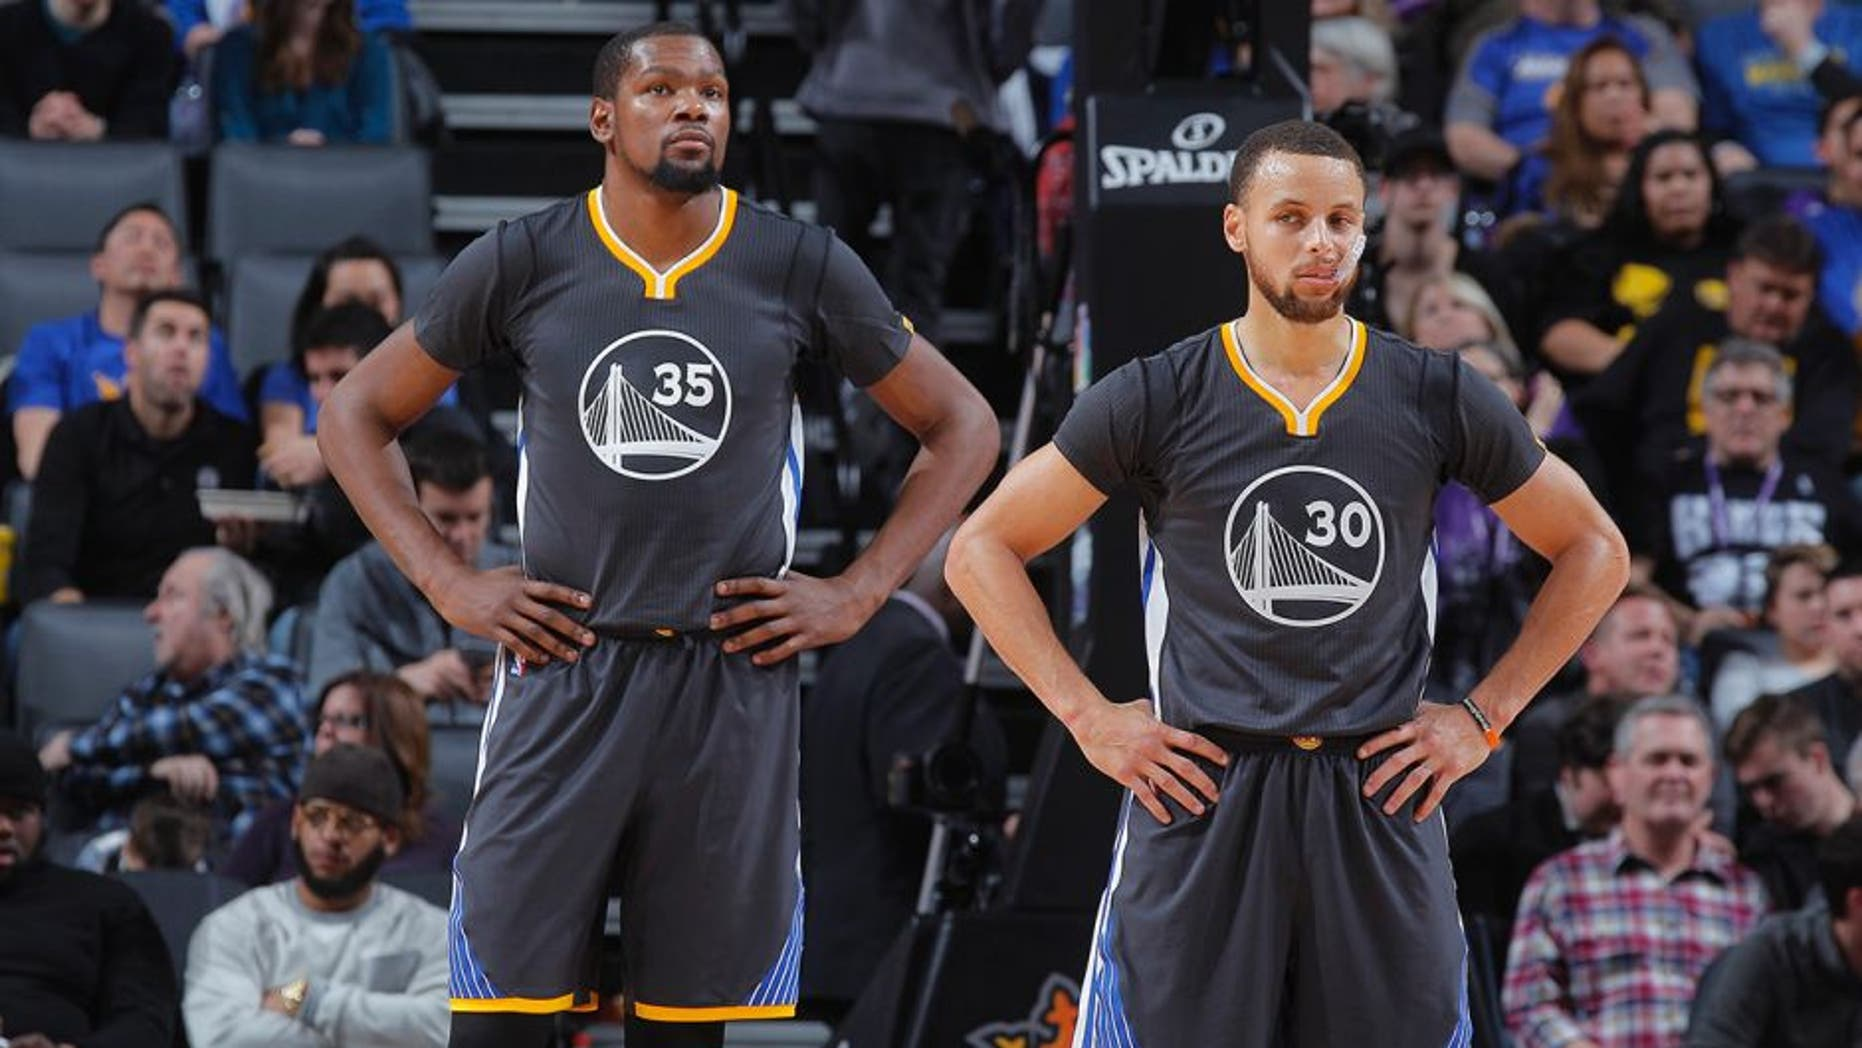 SACRAMENTO, CA - FEBRUARY 4: Kevin Durant #35 and Stephen Curry #30 of the Golden State Warriors look on during the game against the Sacramento Kings on February 4, 2017 at Golden 1 Center in Sacramento, California. NOTE TO USER: User expressly acknowledges and agrees that, by downloading and or using this photograph, User is consenting to the terms and conditions of the Getty Images Agreement. Mandatory Copyright Notice: Copyright 2017 NBAE (Photo by Rocky Widner/NBAE via Getty Images)